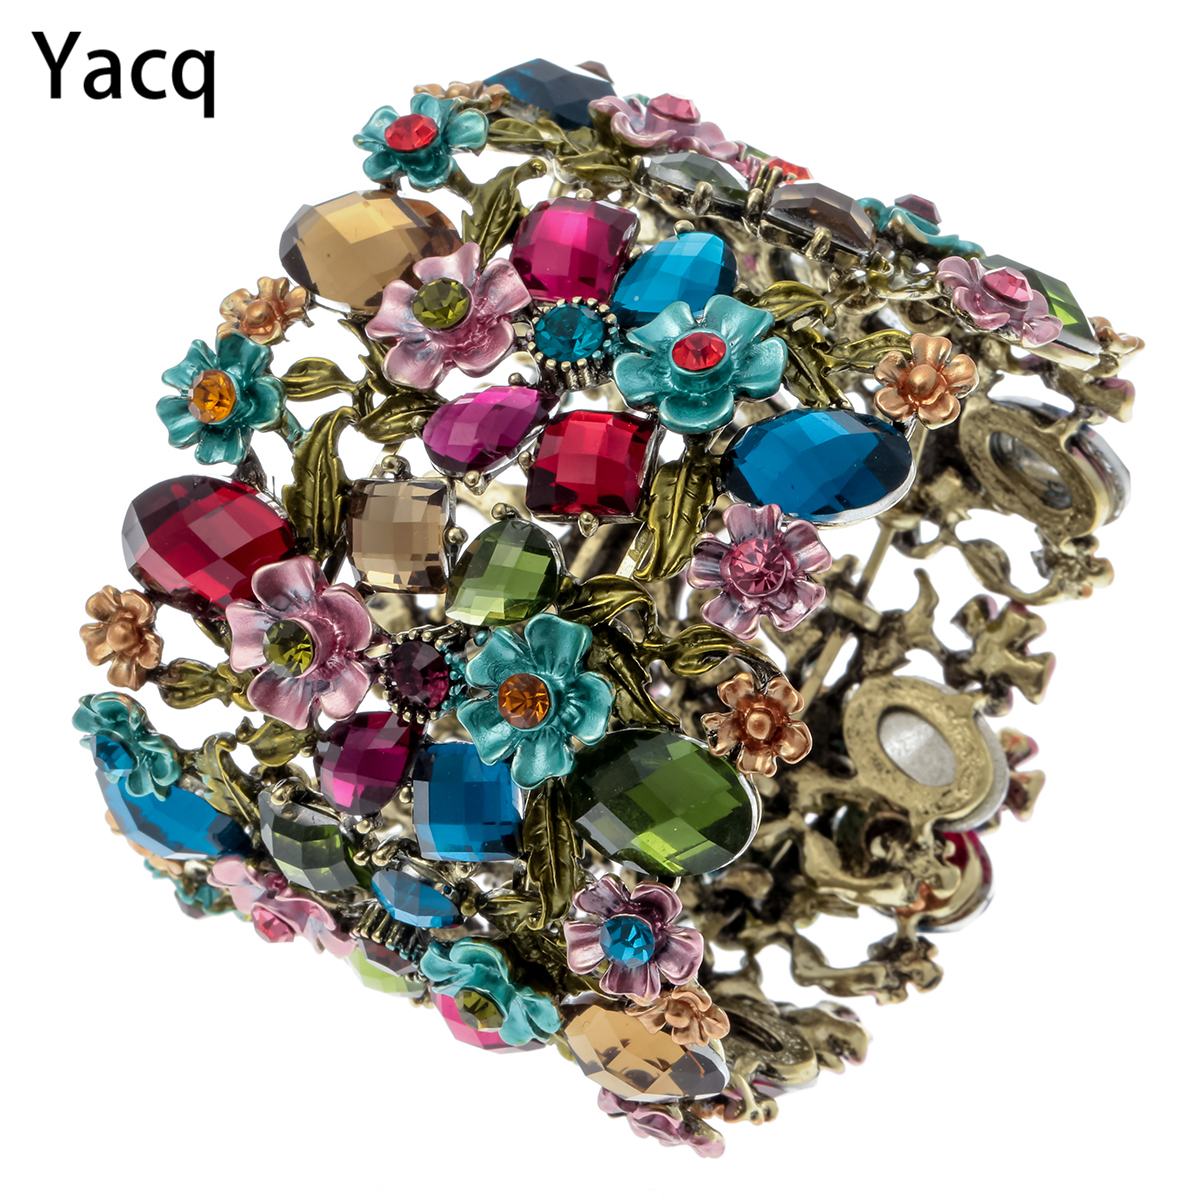 Yacq Flower Stretch Wide Armband Kvinnor Sommar Gullig Manschett Mode - Märkessmycken